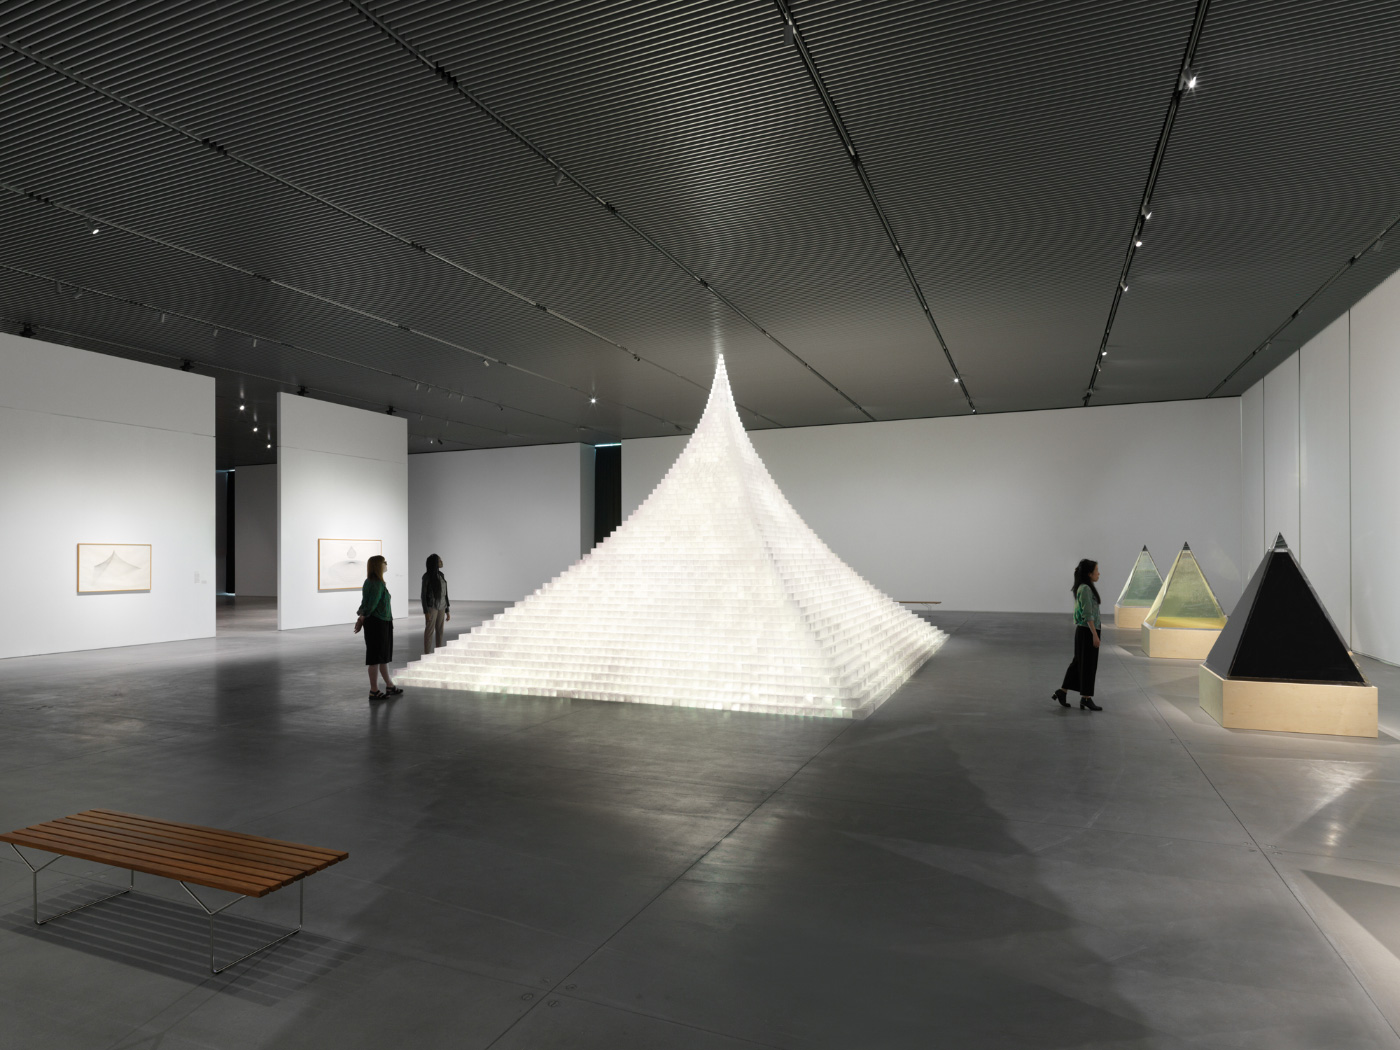 A glowing pyramid in a massive arts space, now closed due to coronavirus